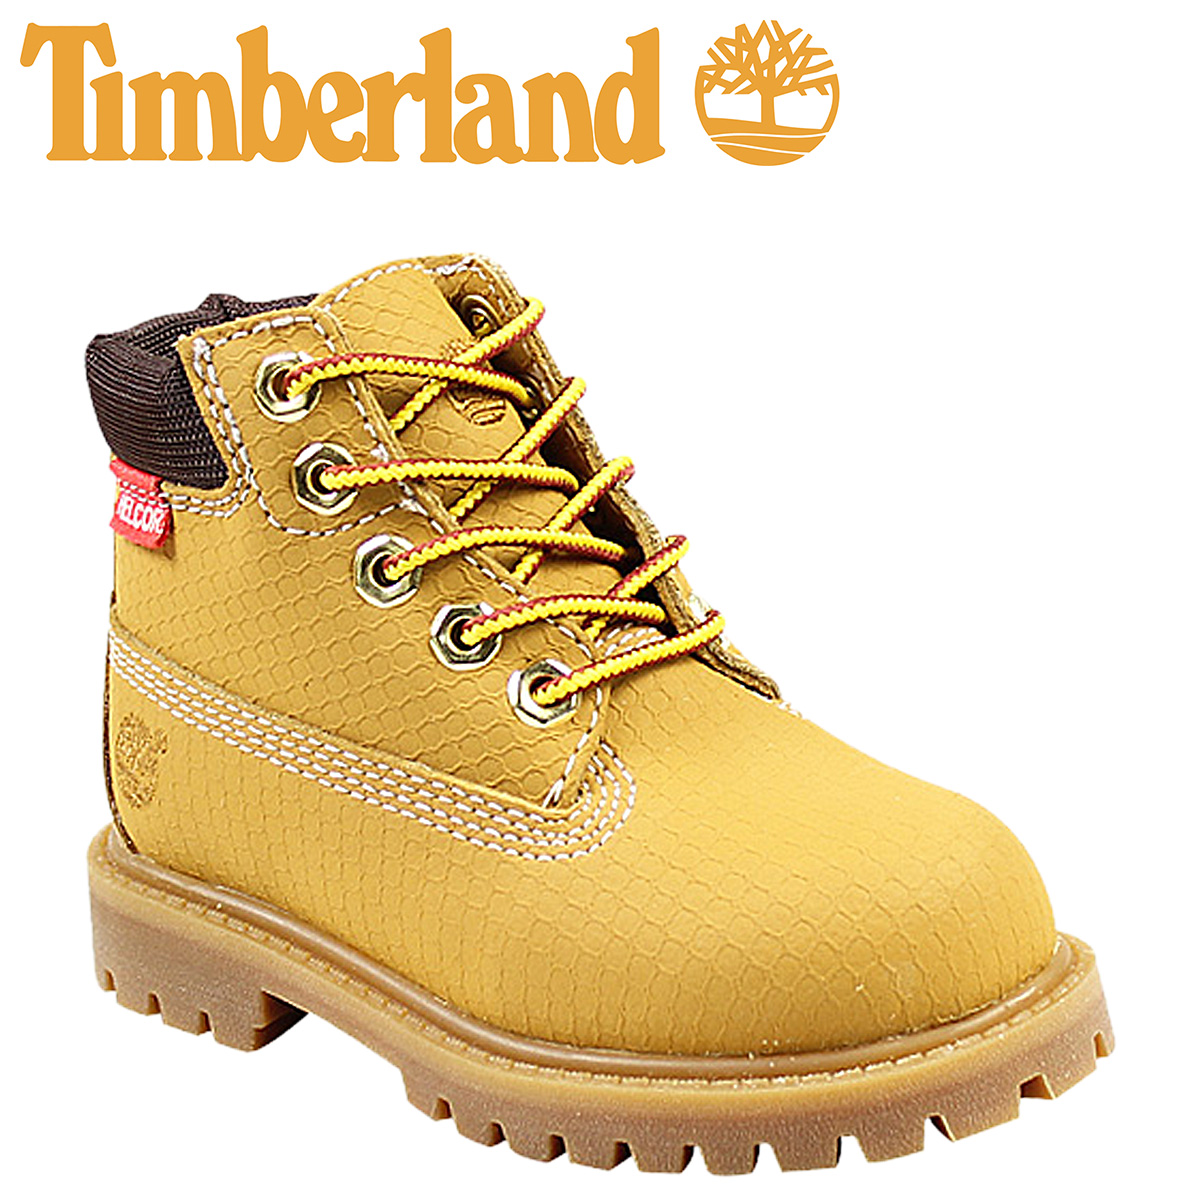 7d99497cb04 6 inches of Timberland Timberland baby kids premium waterproof boots 6 INCH  PREMIUM WATERPROOF HELCOR BABY TODDLERS BOOTS leather youth child 6586R ...